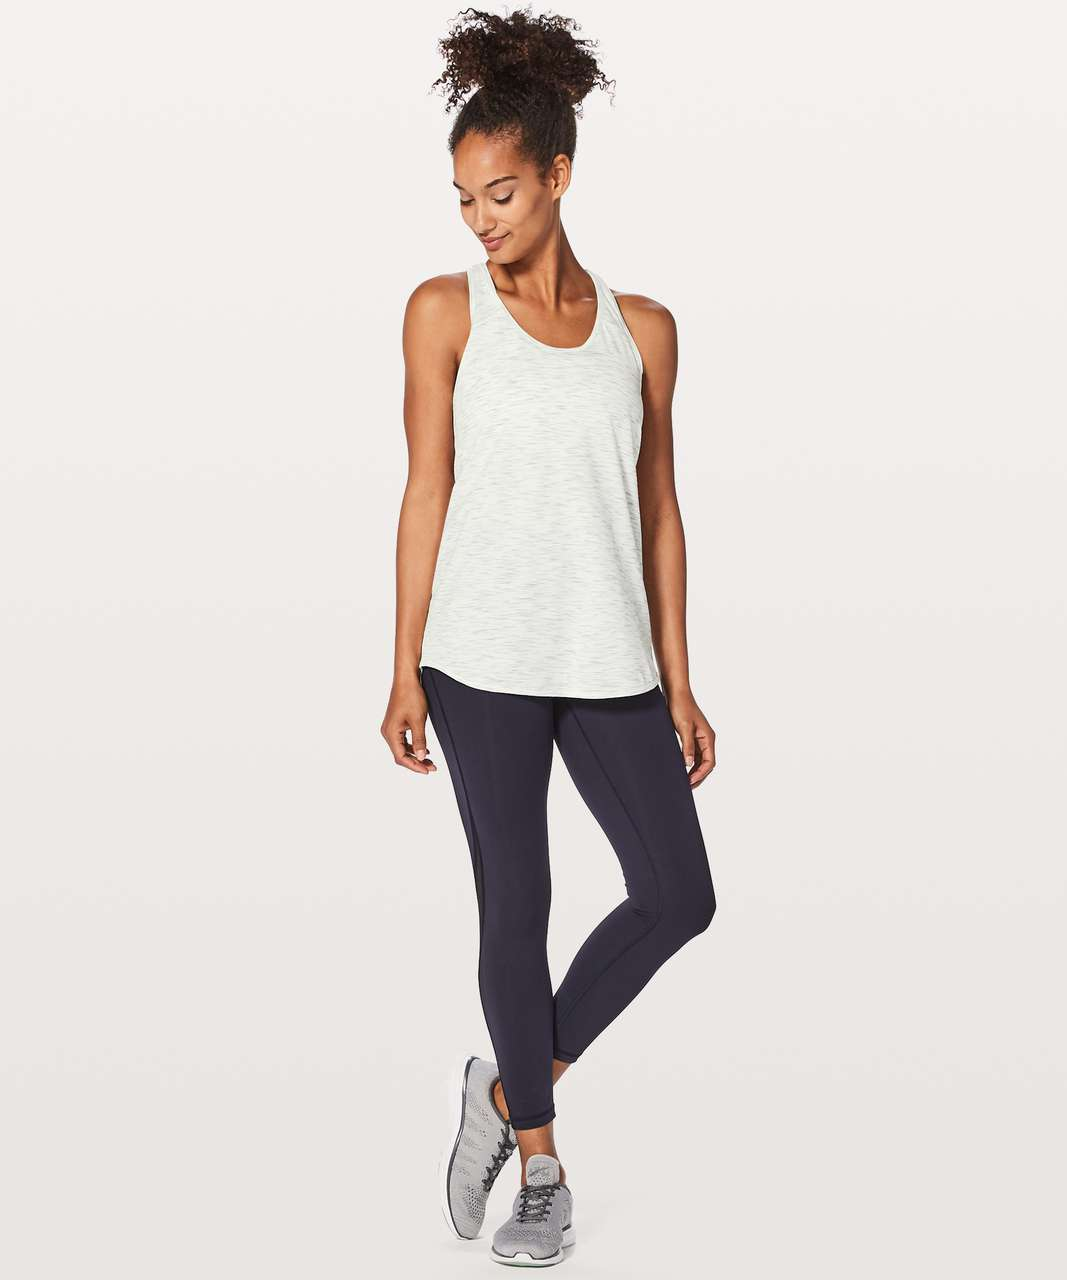 Lululemon Essential Tank - Tiger Space Dye Hail White